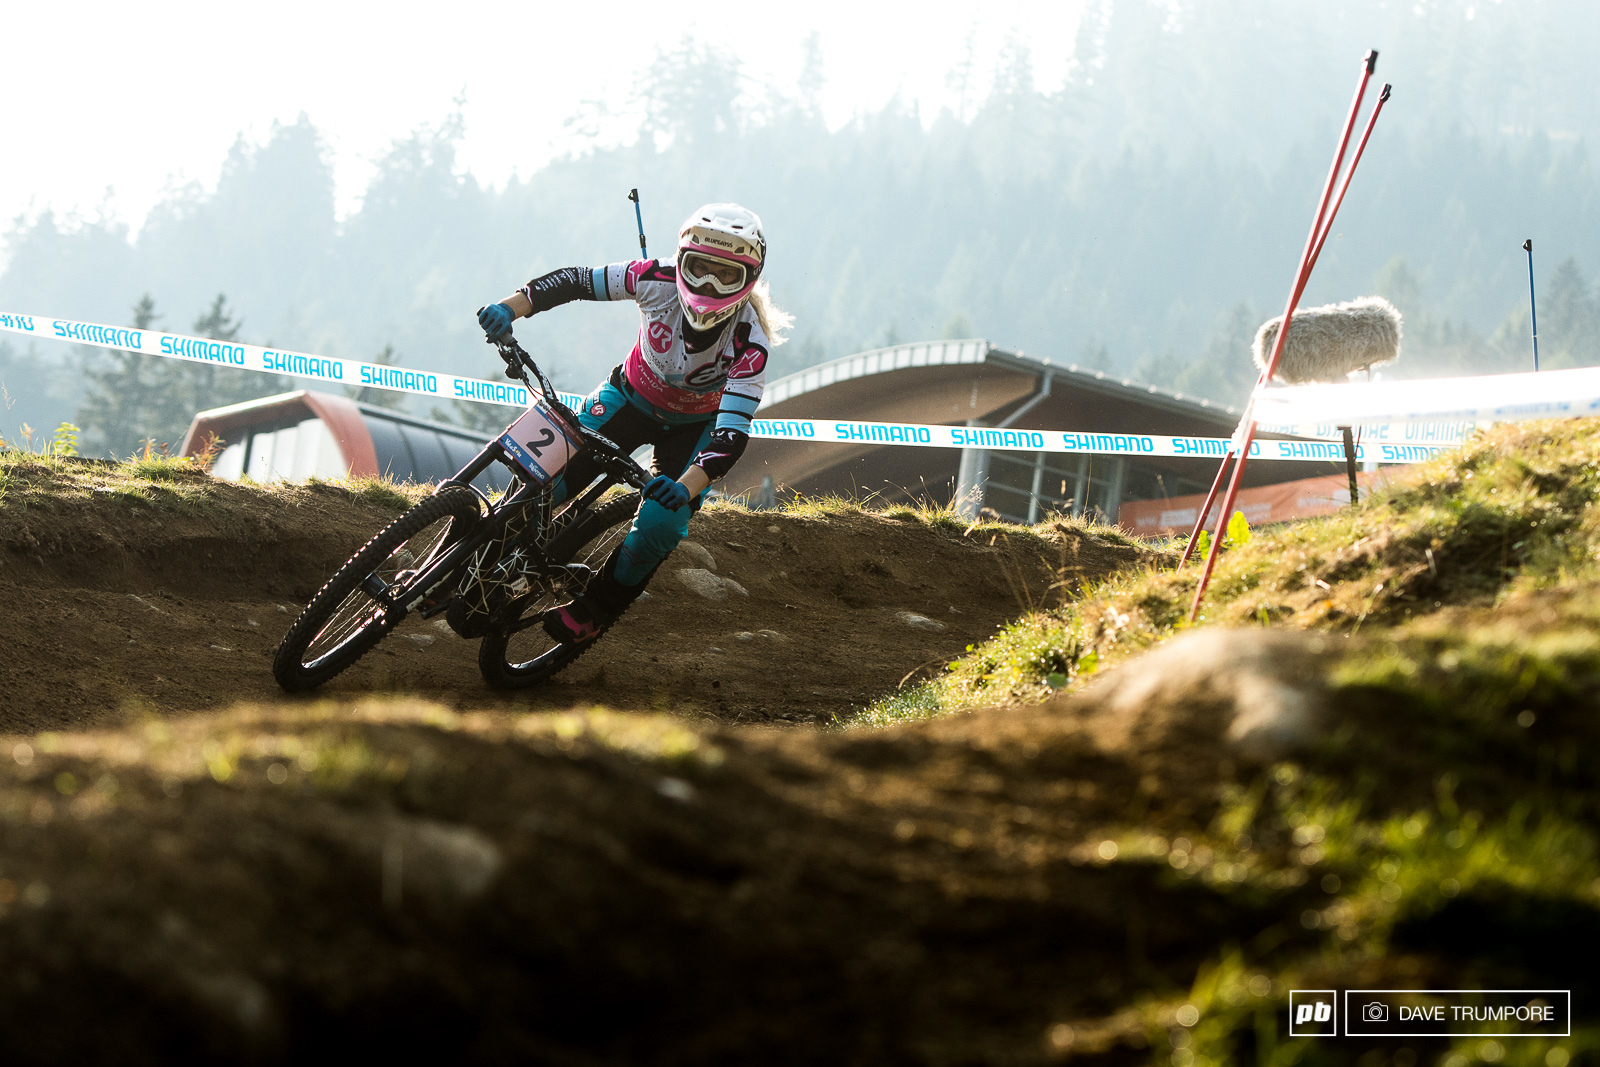 Tracey Hannah struggled wth confidence today after a big crash. She would finish 3rd in the race and the overall.